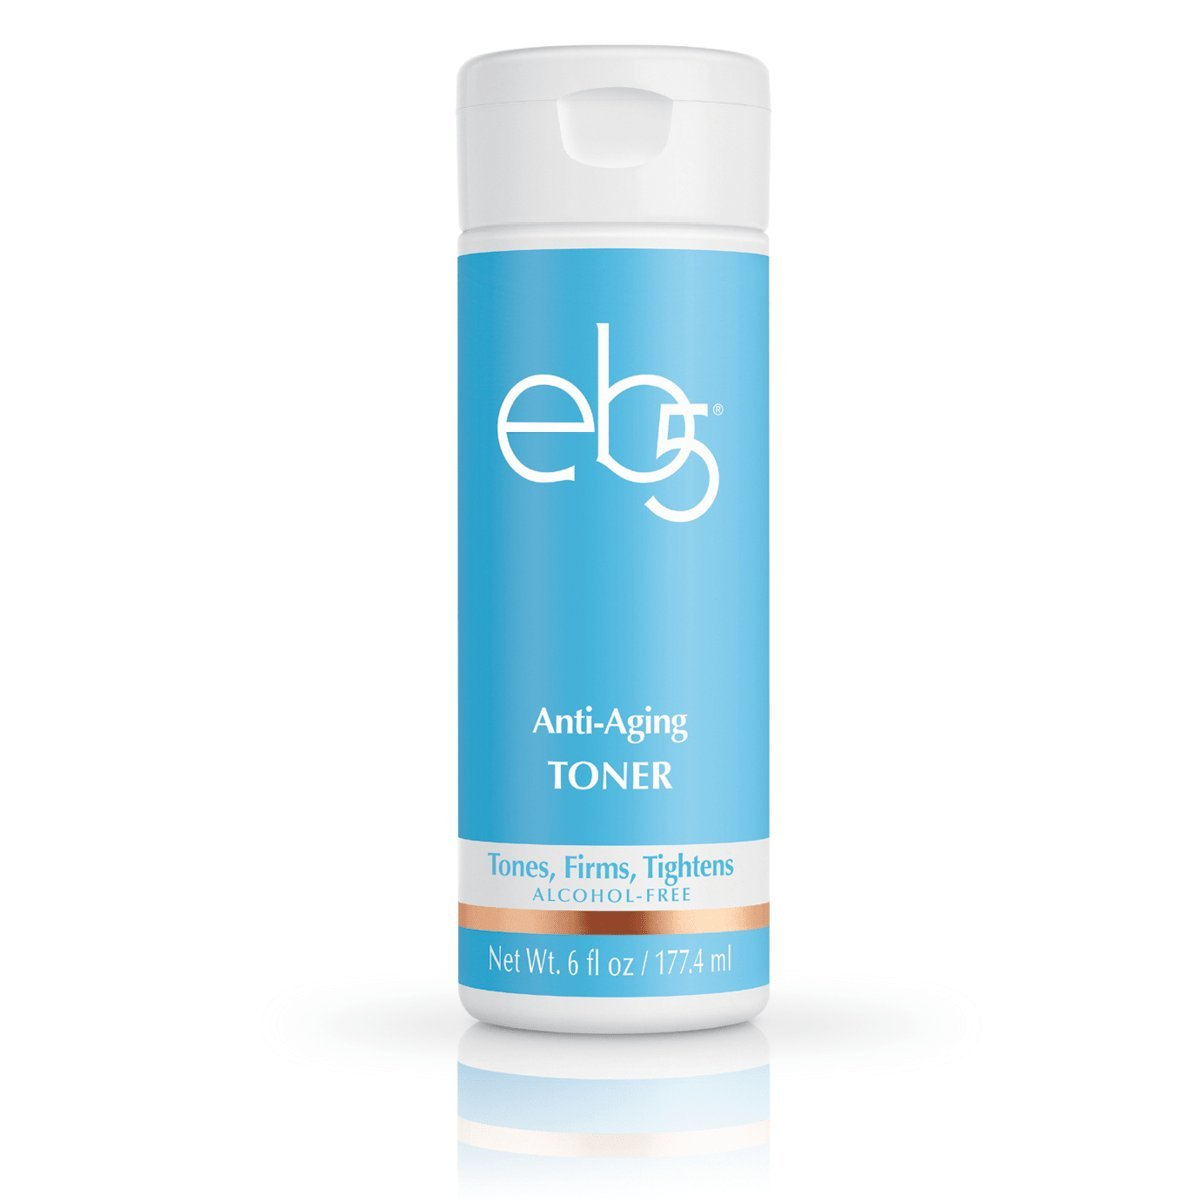 eb5 Anti-Aging Facial Toner | Alcohol-Free, Balancing and Firming - 6oz